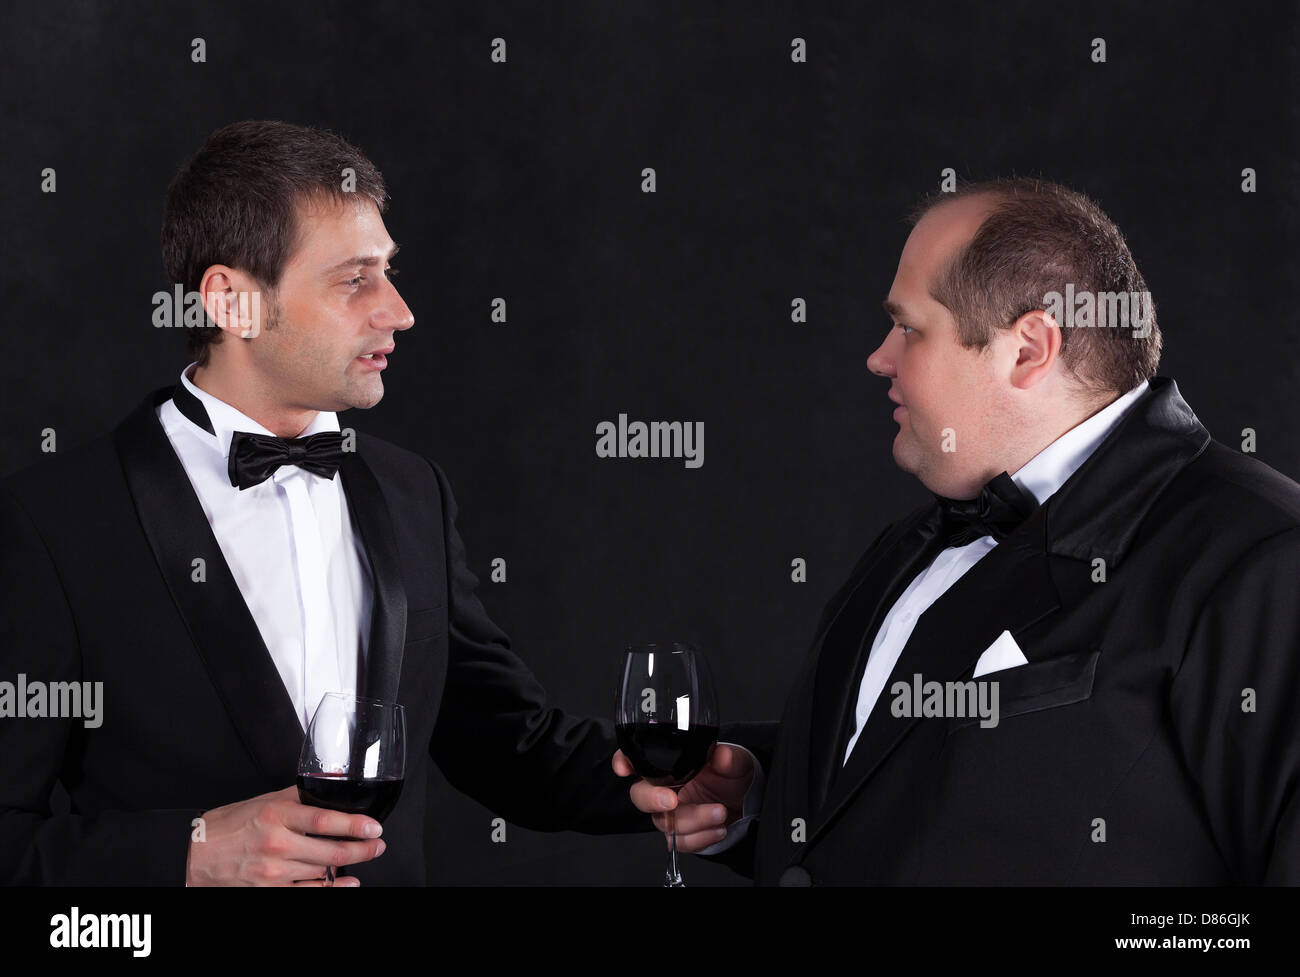 Two stylish businessman in tuxedos with glasses of red wine, on black background - Stock Image